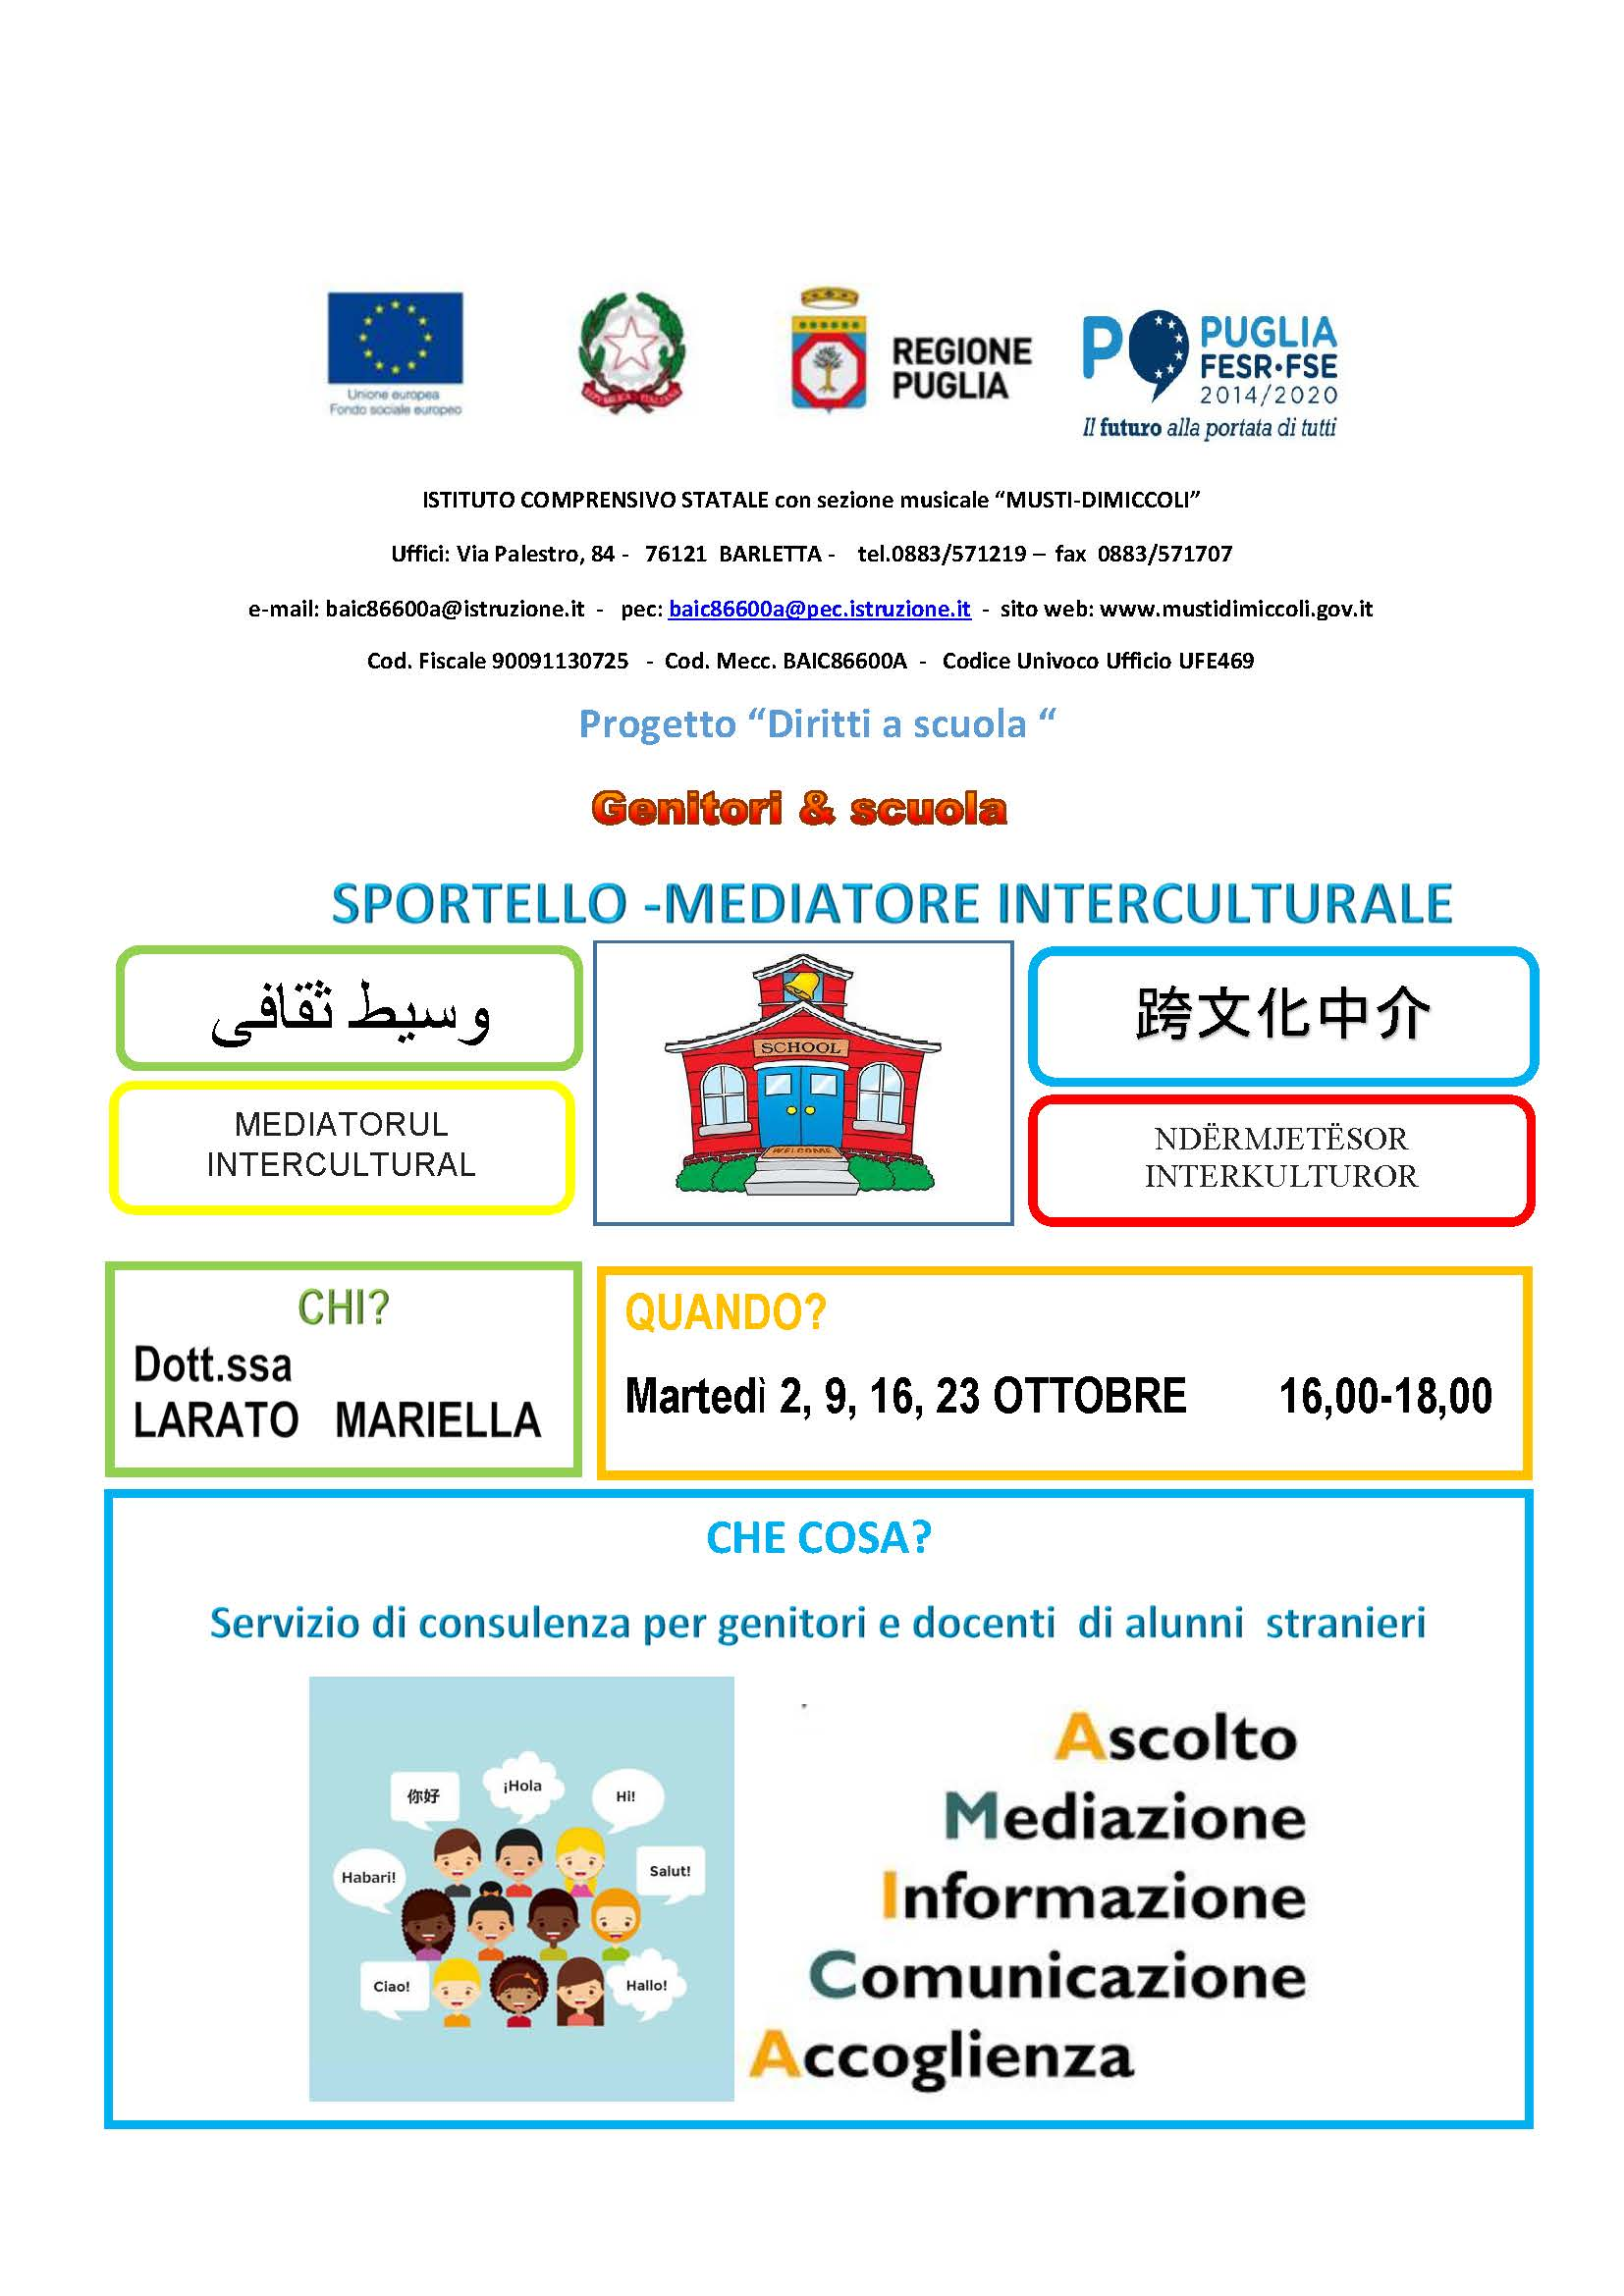 SPORTELLO MEDIATORE INTERCULTURALE